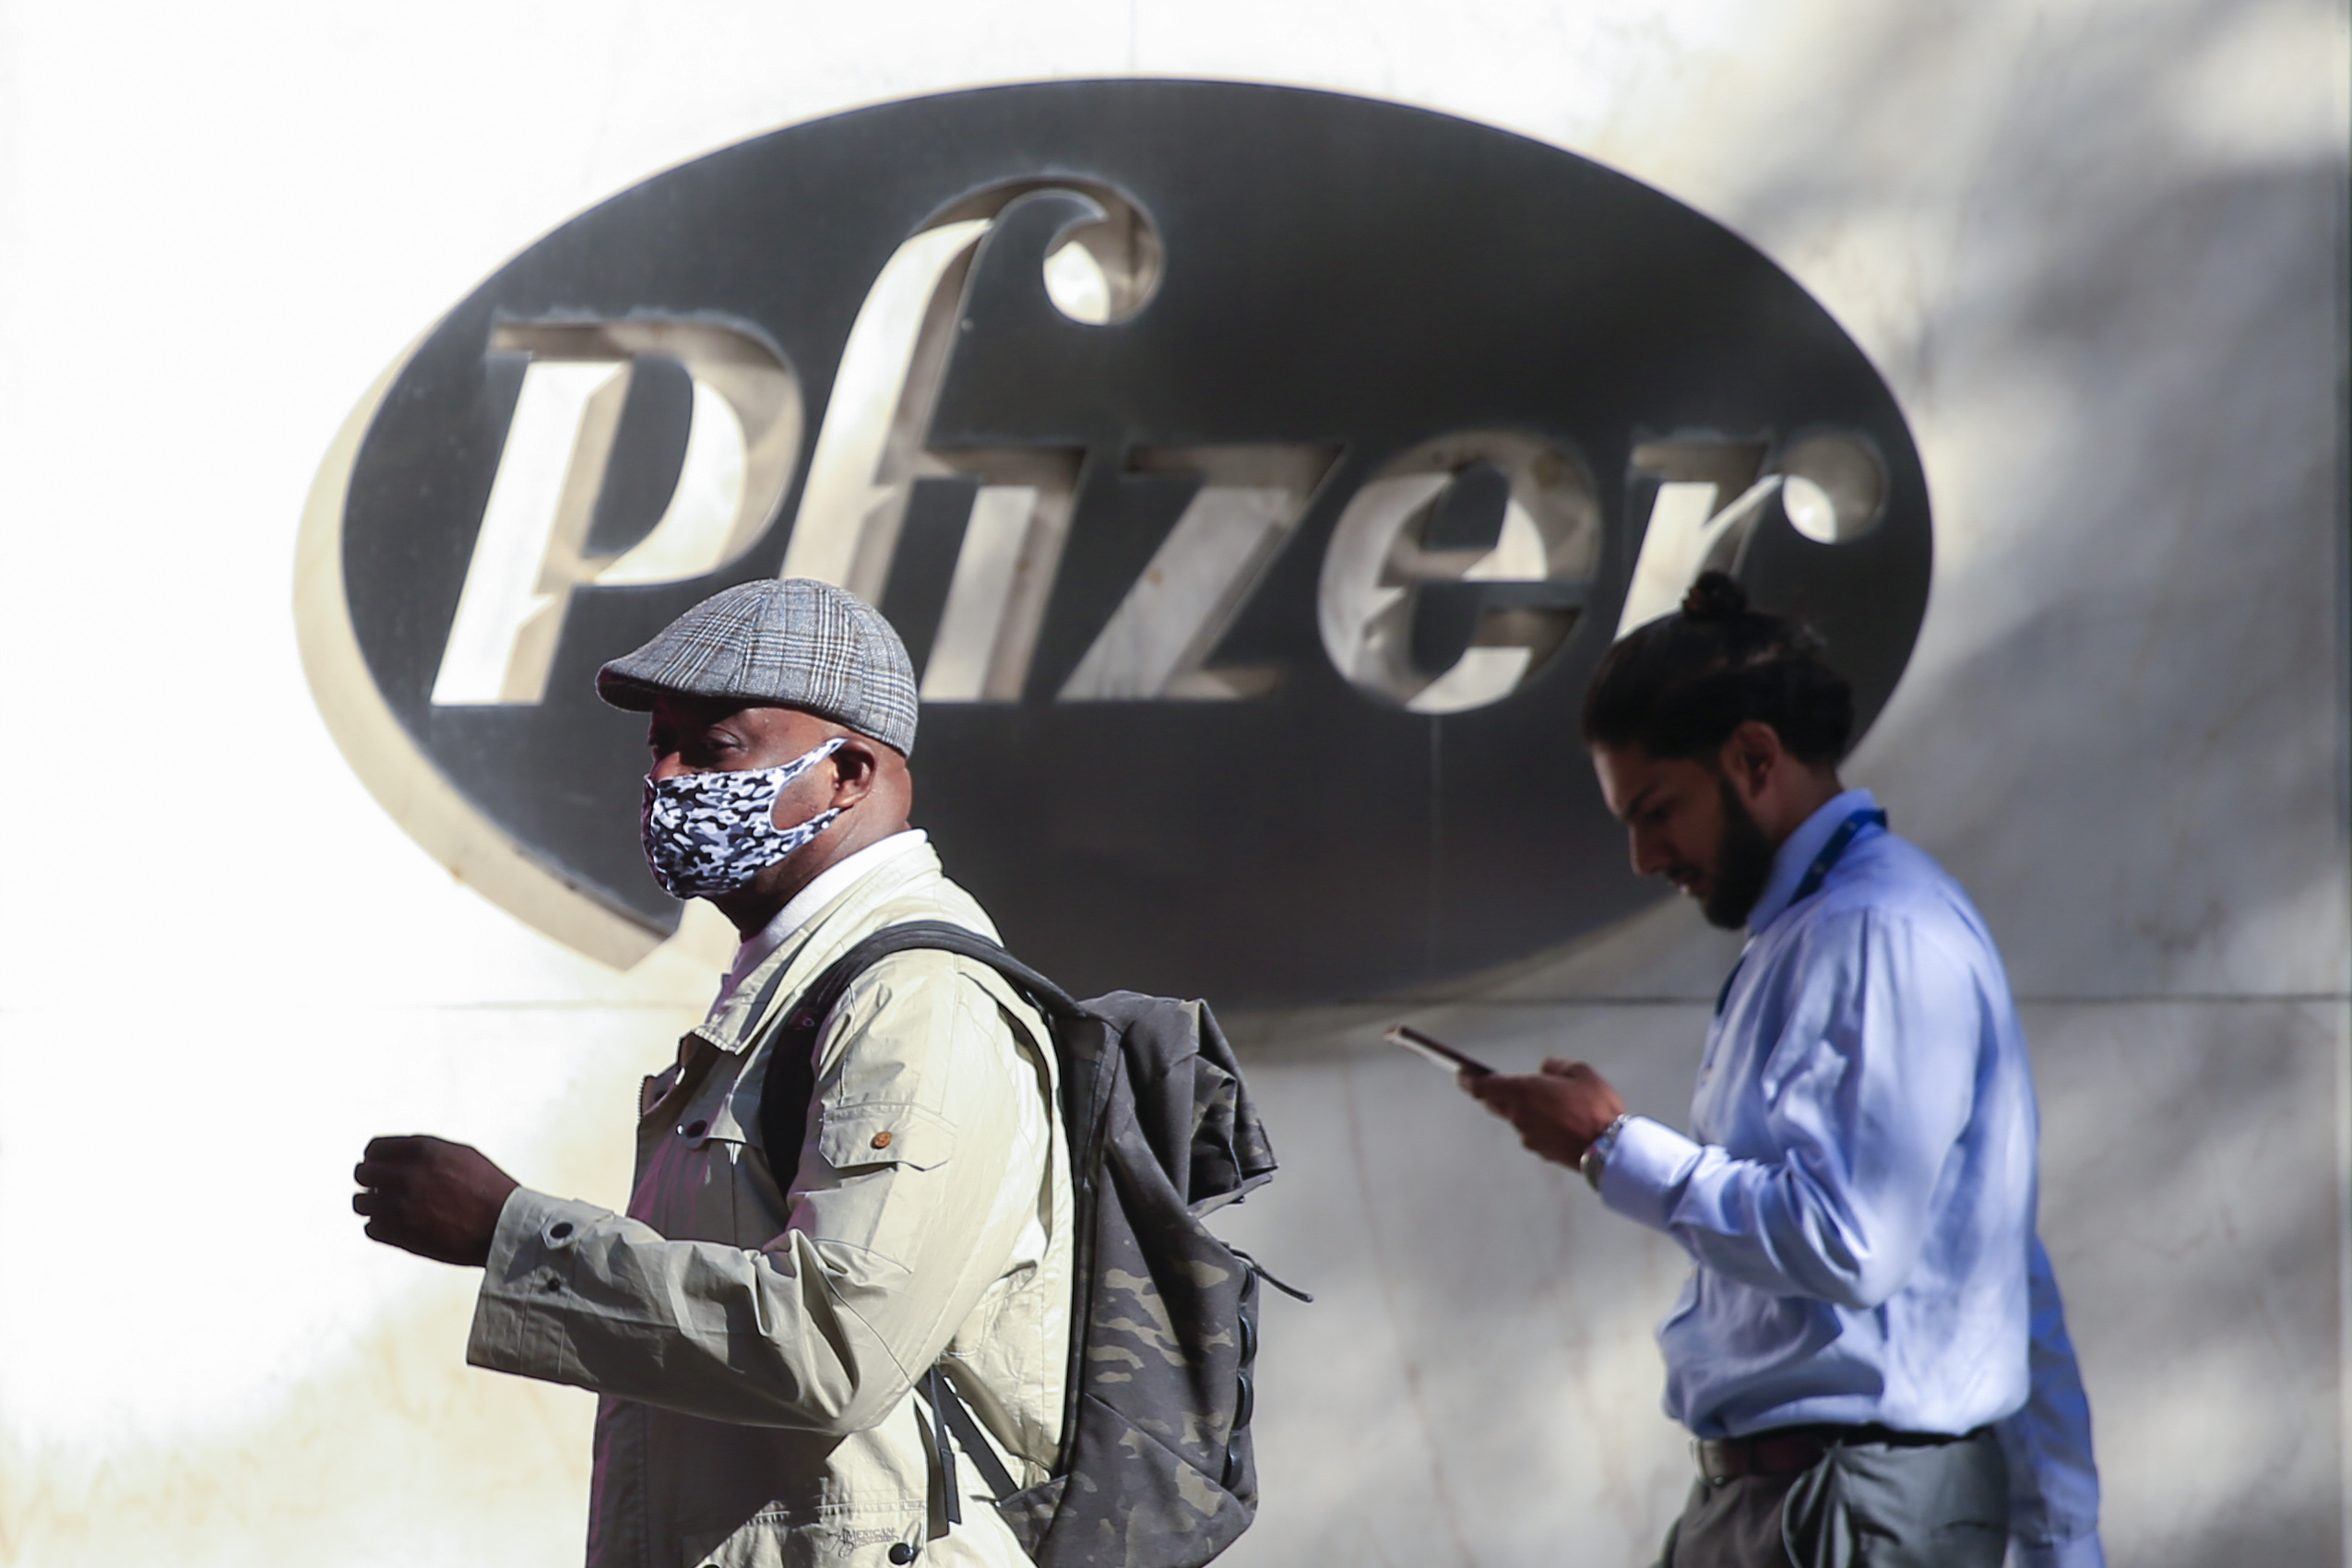 People walk by the Pfizer world headquarters in New York on Nov. 9. (Kena Betancur/AFP via Getty Images)